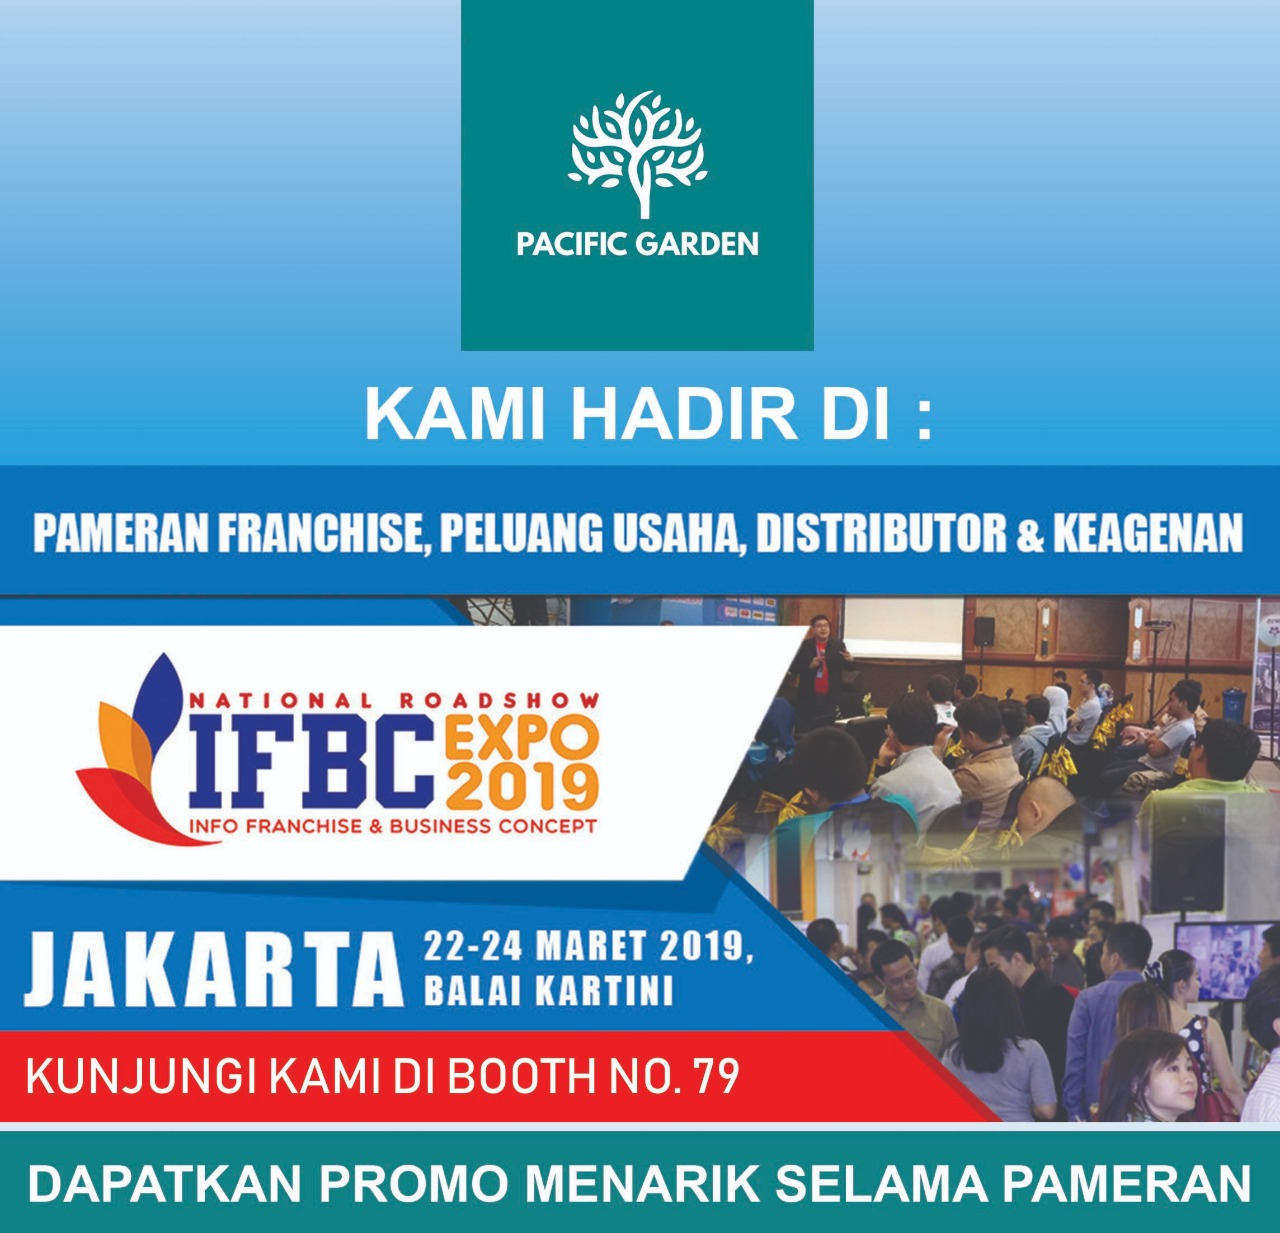 You are currently viewing IFBC Expo 2019! Kunjungi Pacific Garden di National Roadshow